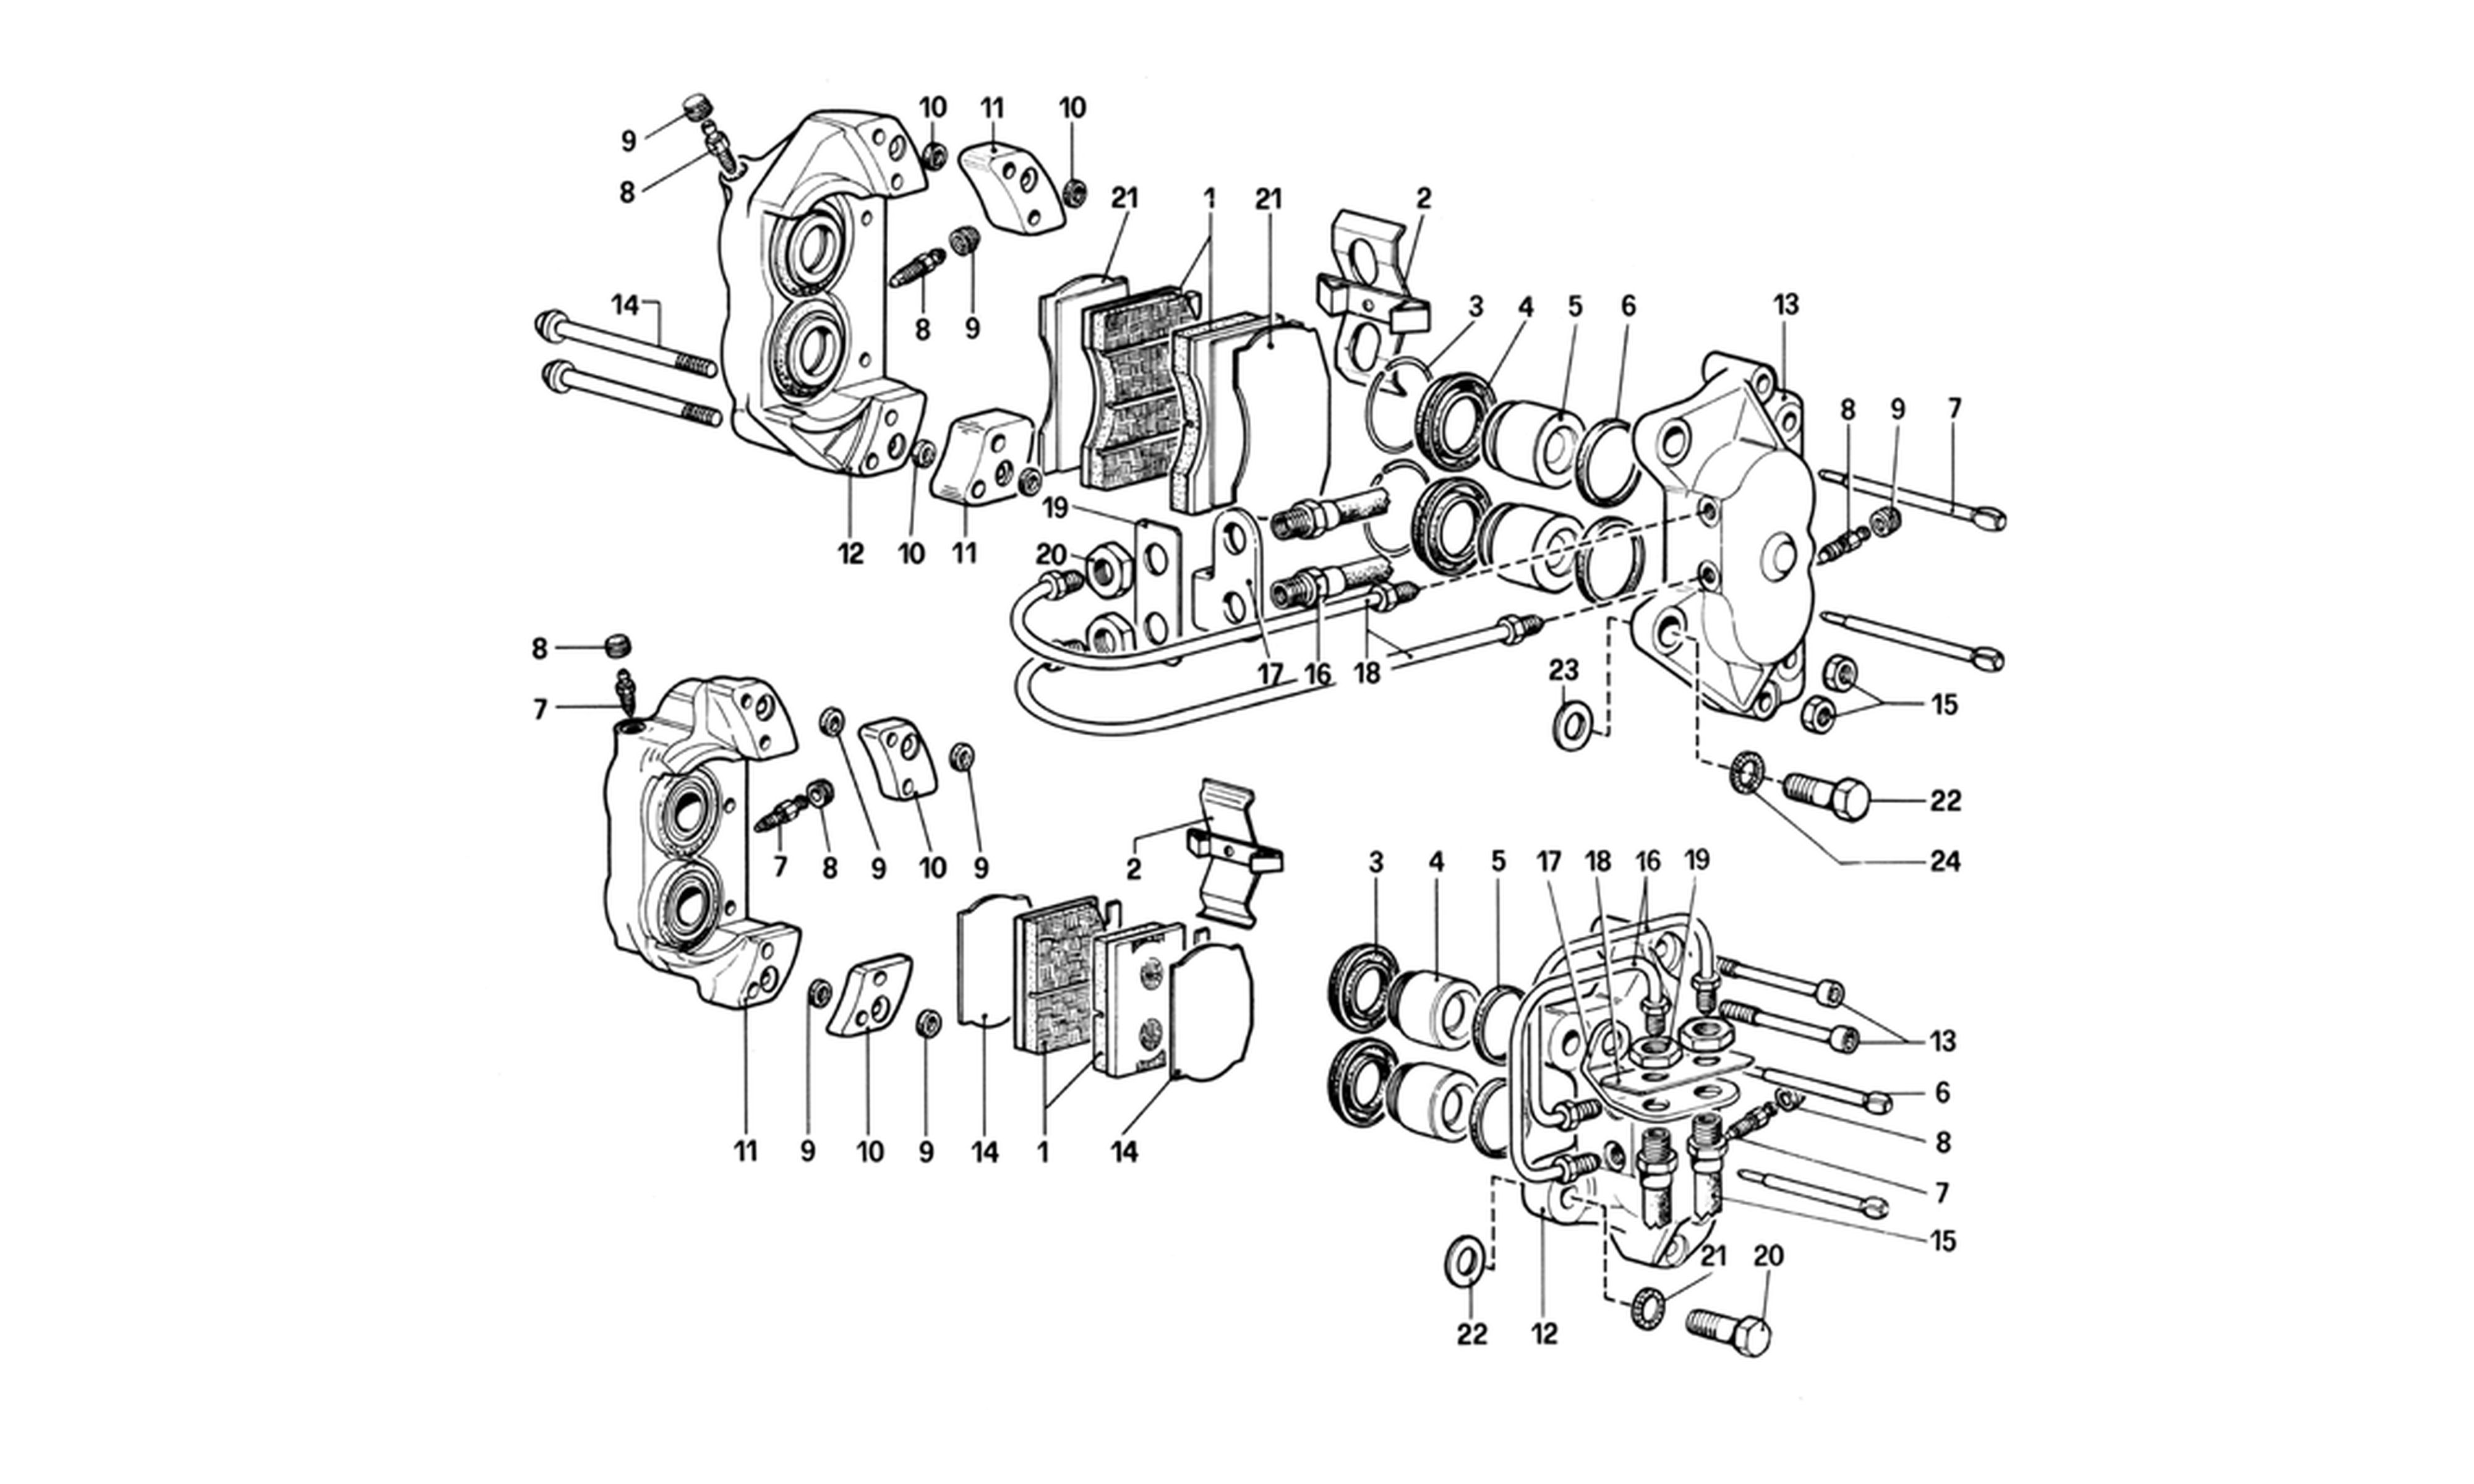 Schematic: Calipers For Front And Rear Brakes